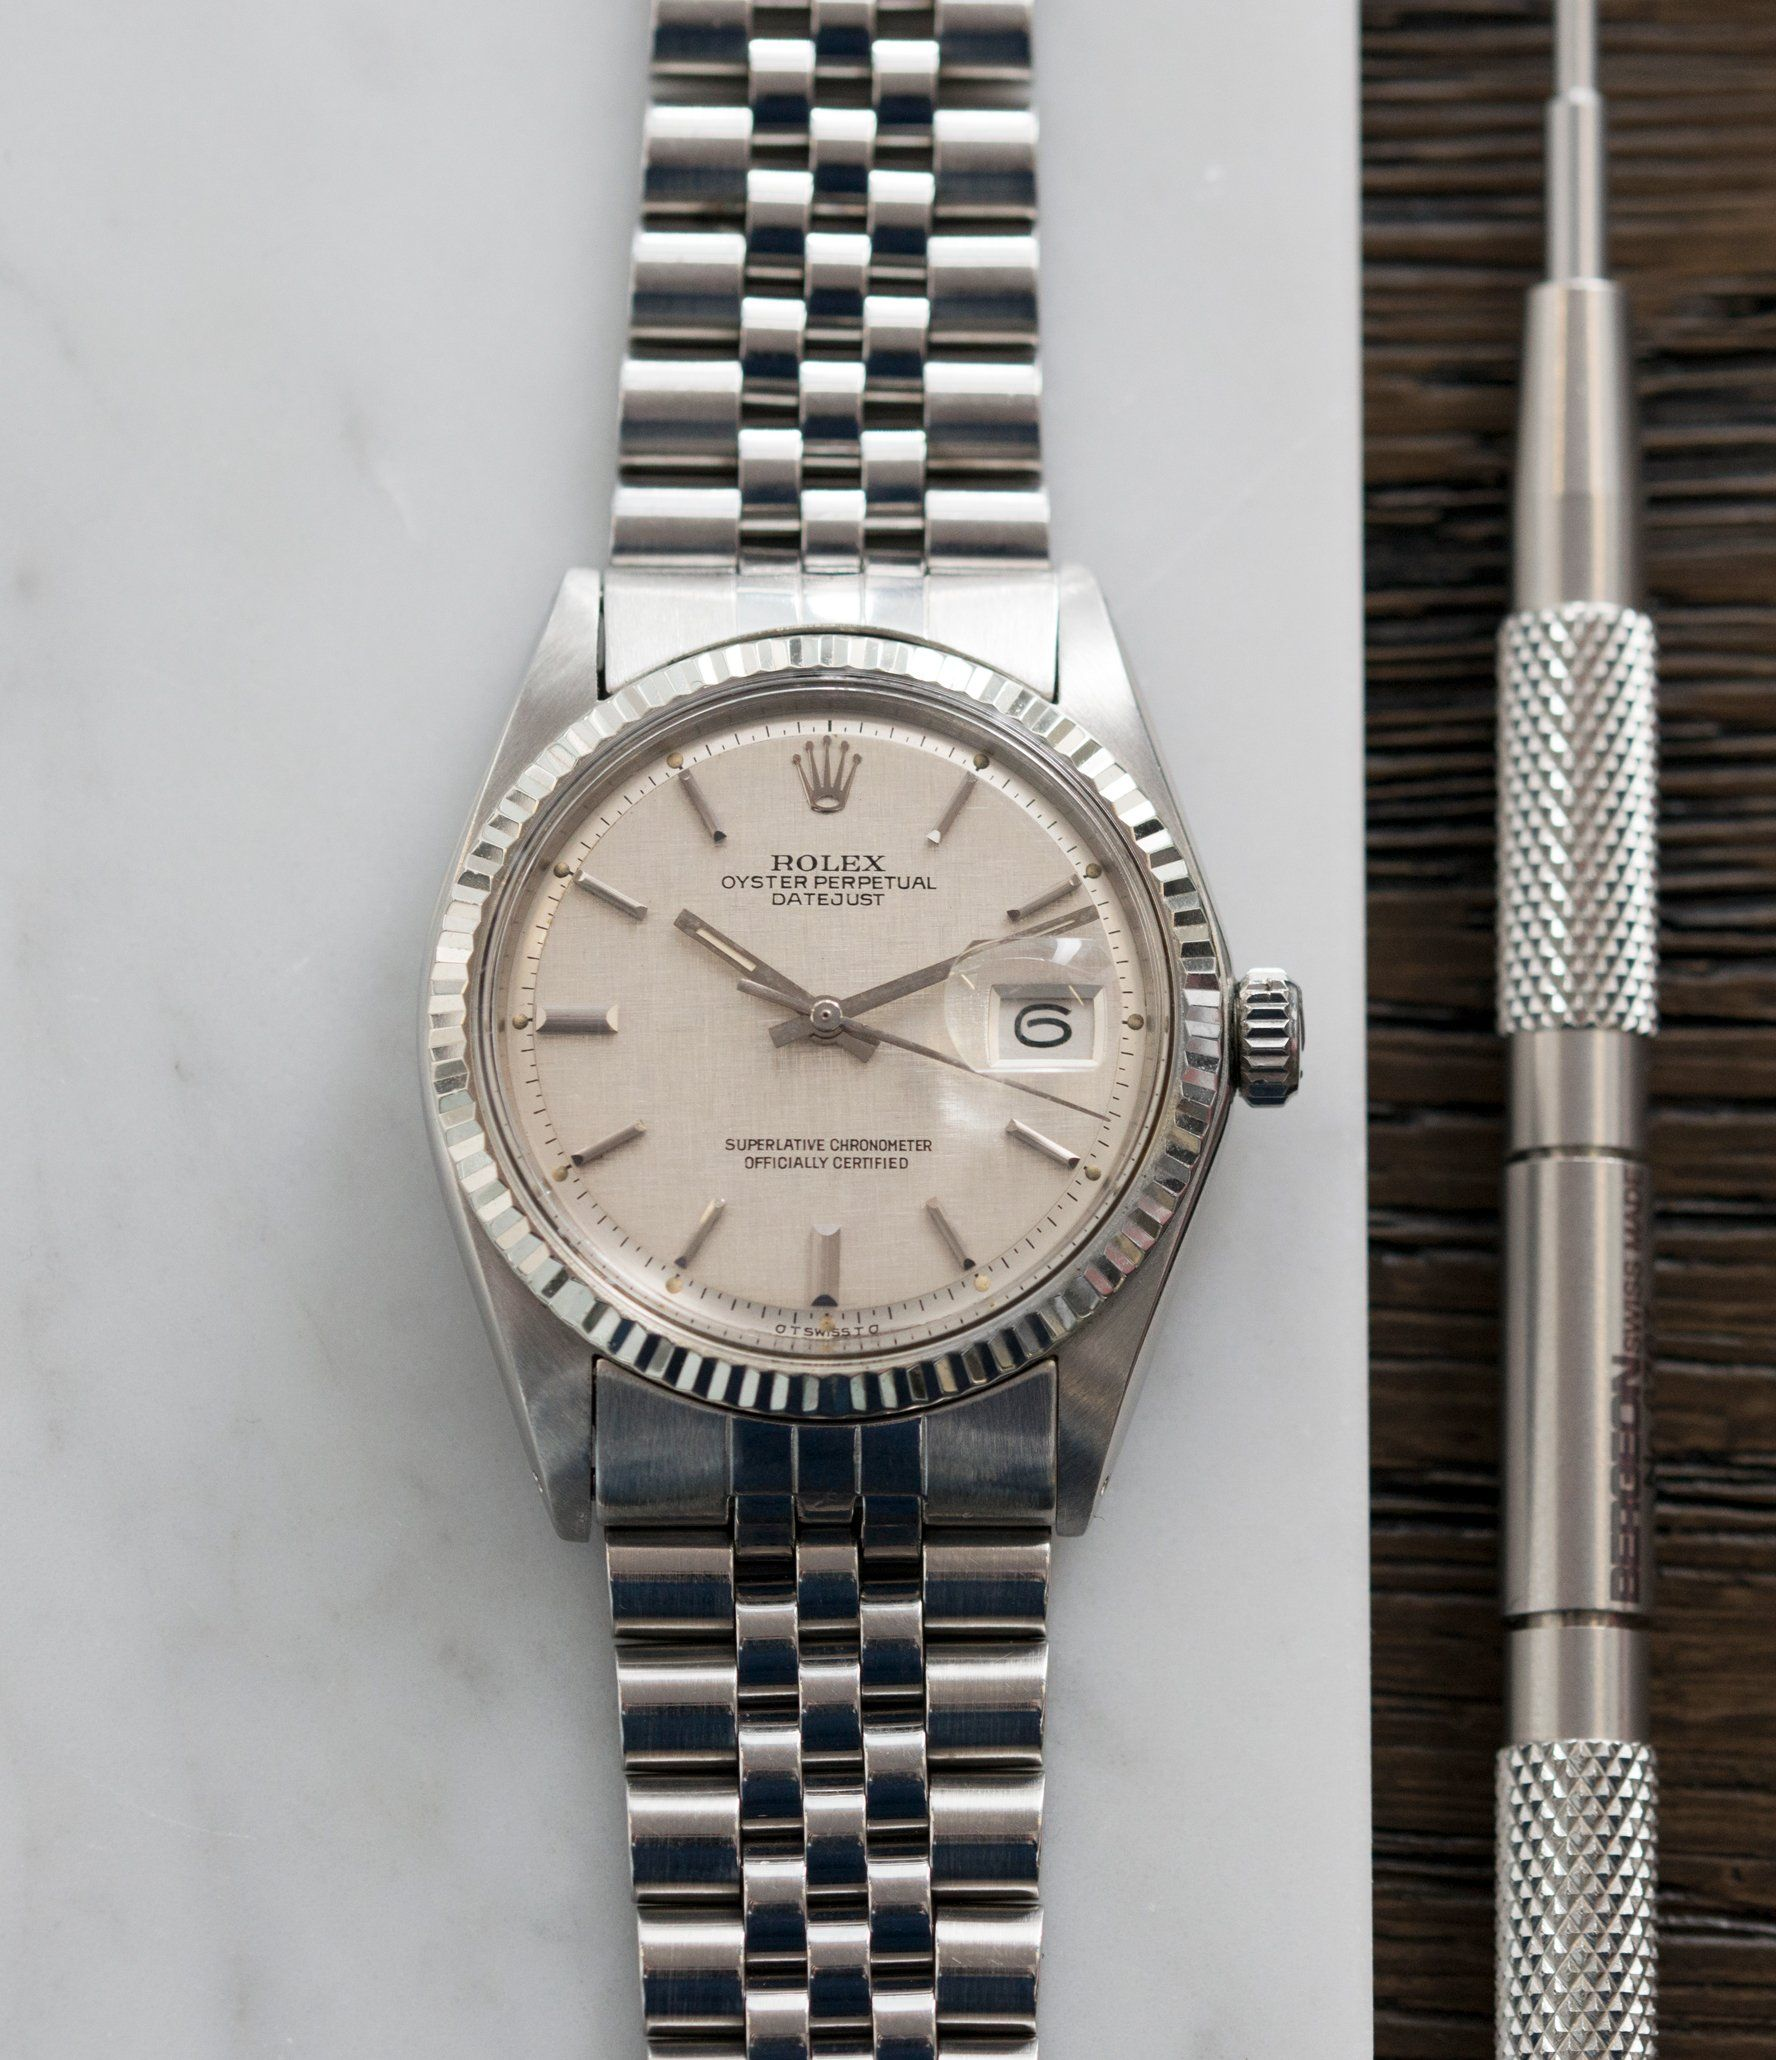 7754a00f8cc Rolex Datejust 1601 linen dial Oyster Perpetual vintage automatic steel  sport dress watch at A Collected Man London